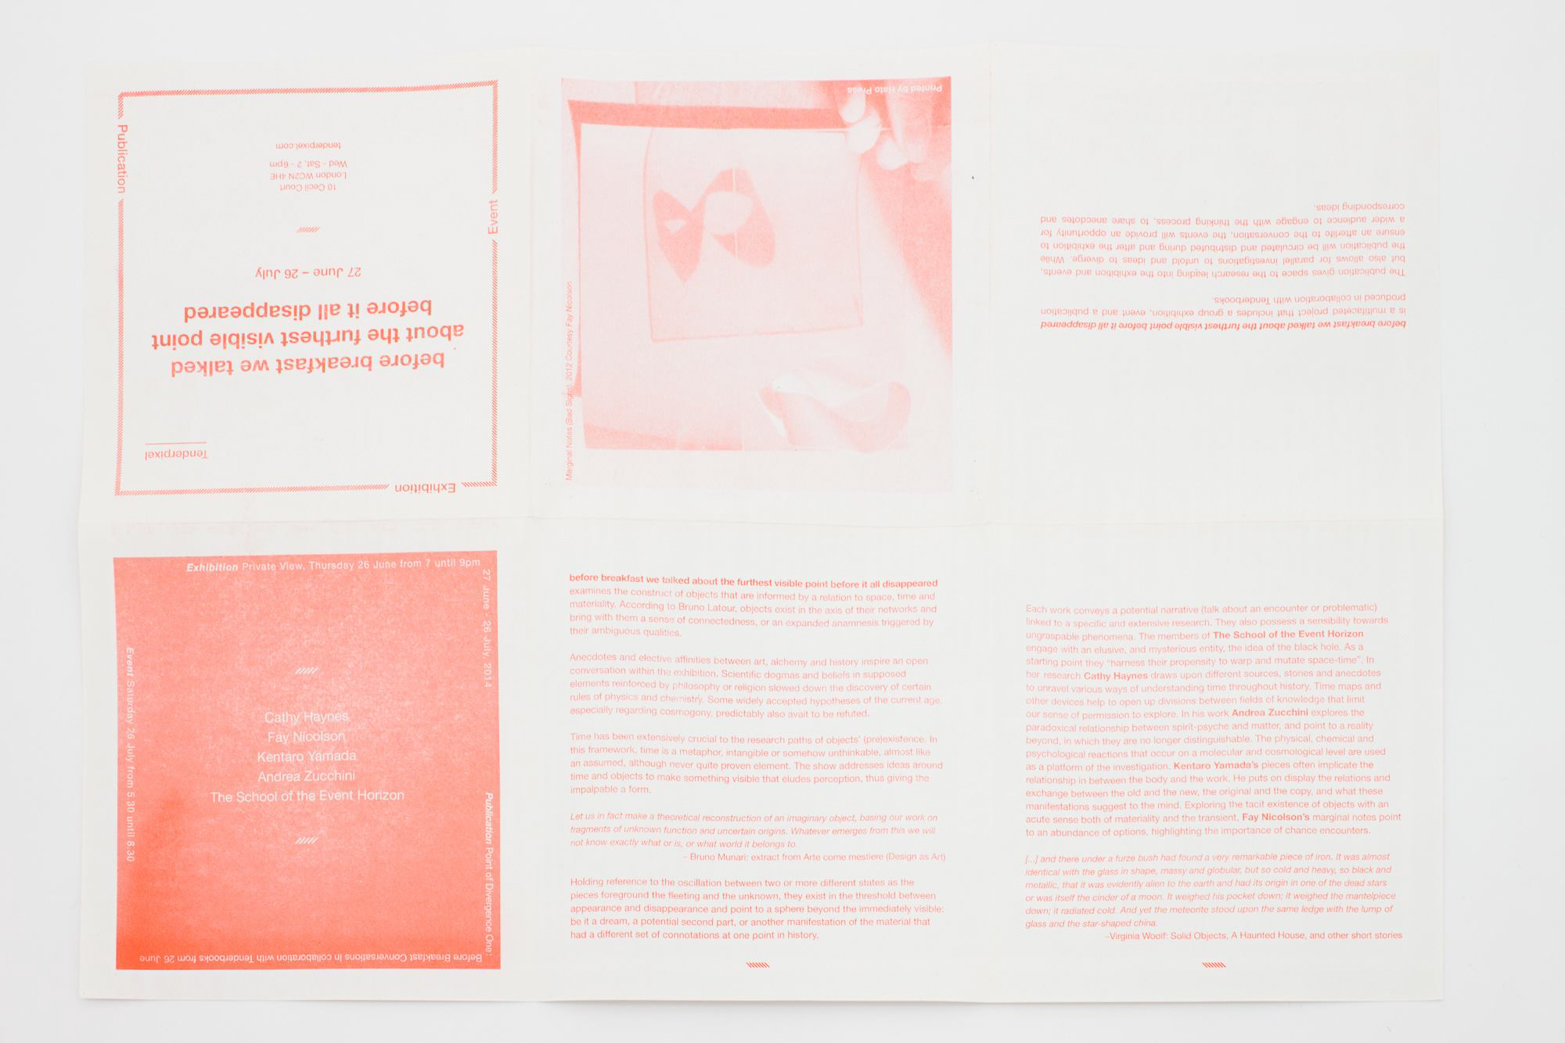 Exhibition handout design by Rowena Harris for Tenderpixel.